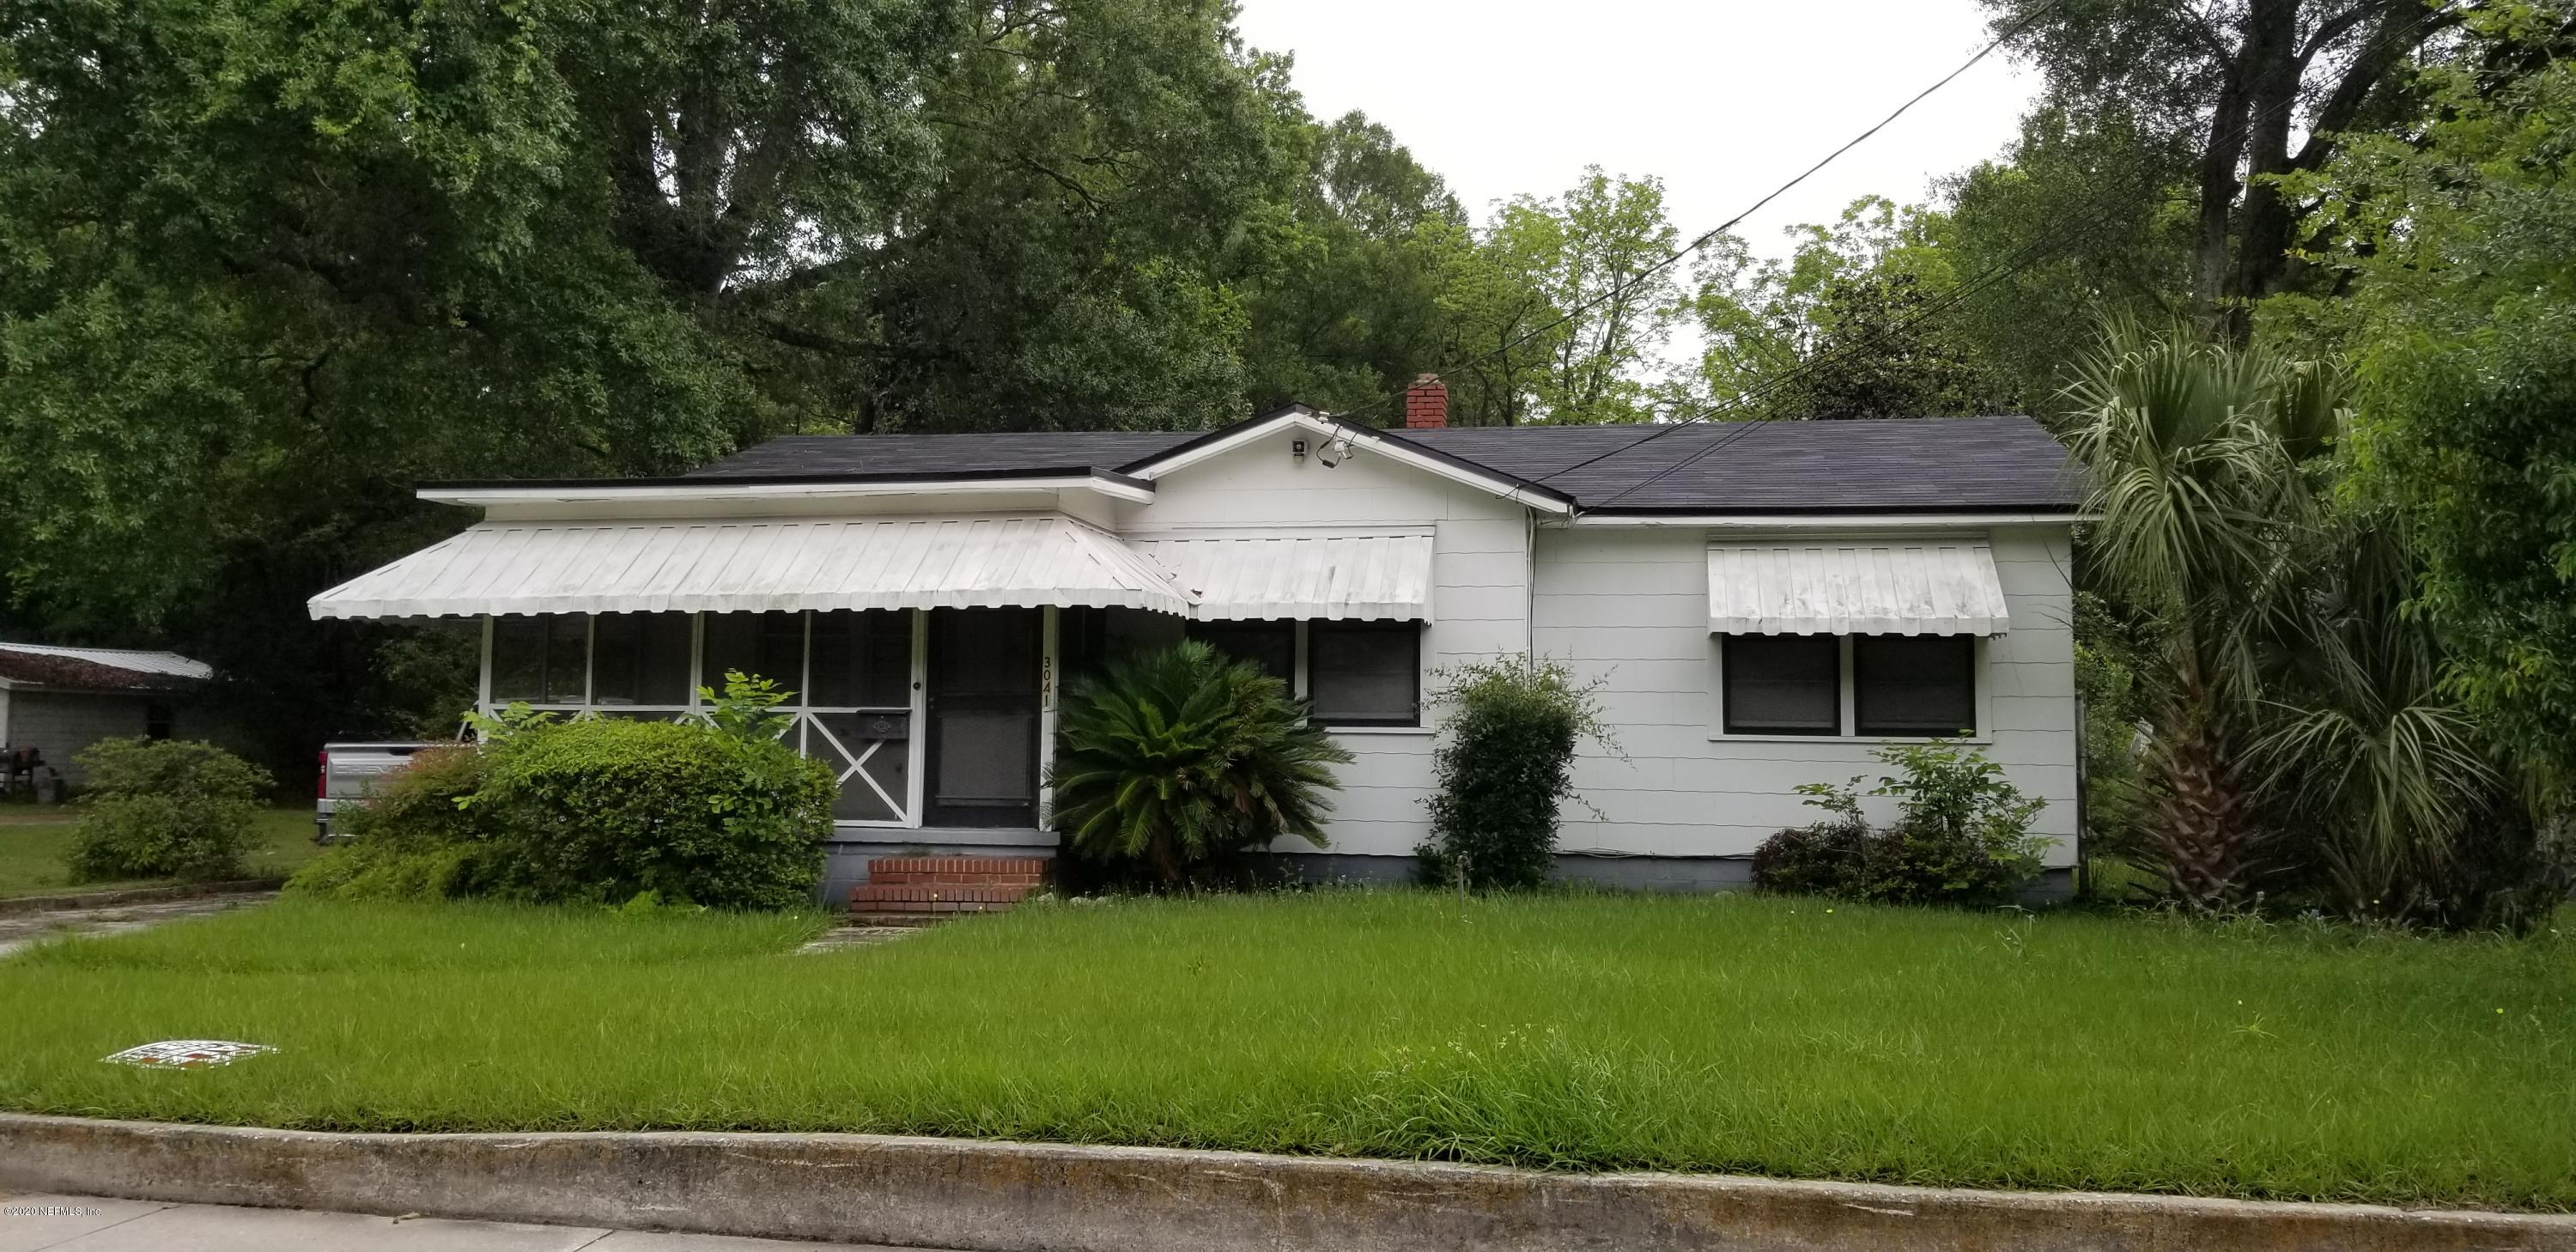 3041 COMMONWEALTH, JACKSONVILLE, FLORIDA 32254, 3 Bedrooms Bedrooms, ,1 BathroomBathrooms,Residential,For sale,COMMONWEALTH,1050876